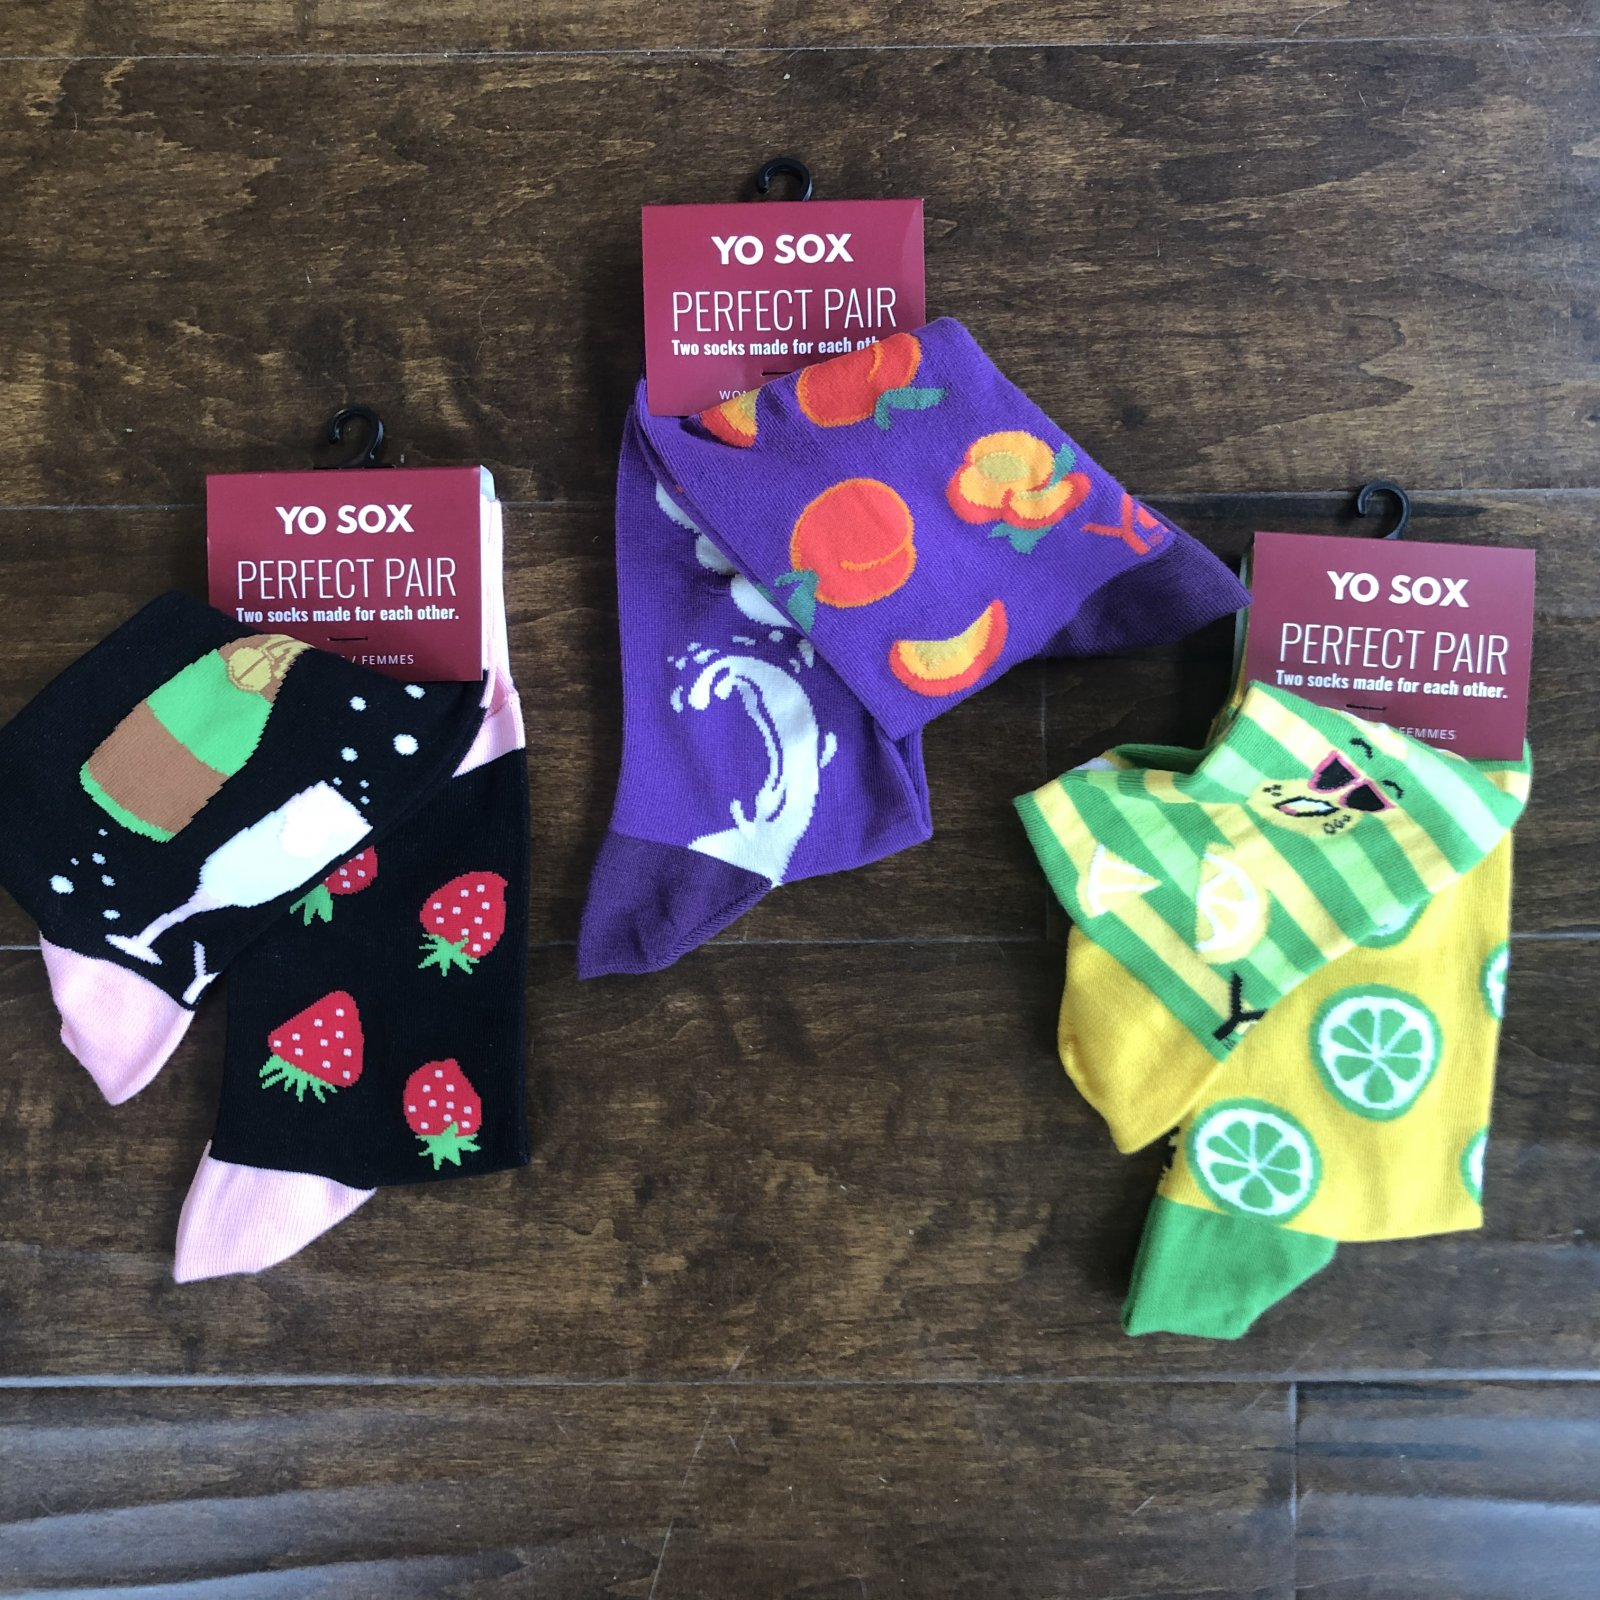 Yo Sox Perfect Pair Socks - Women's (Champagne, Lemon, Peaches)